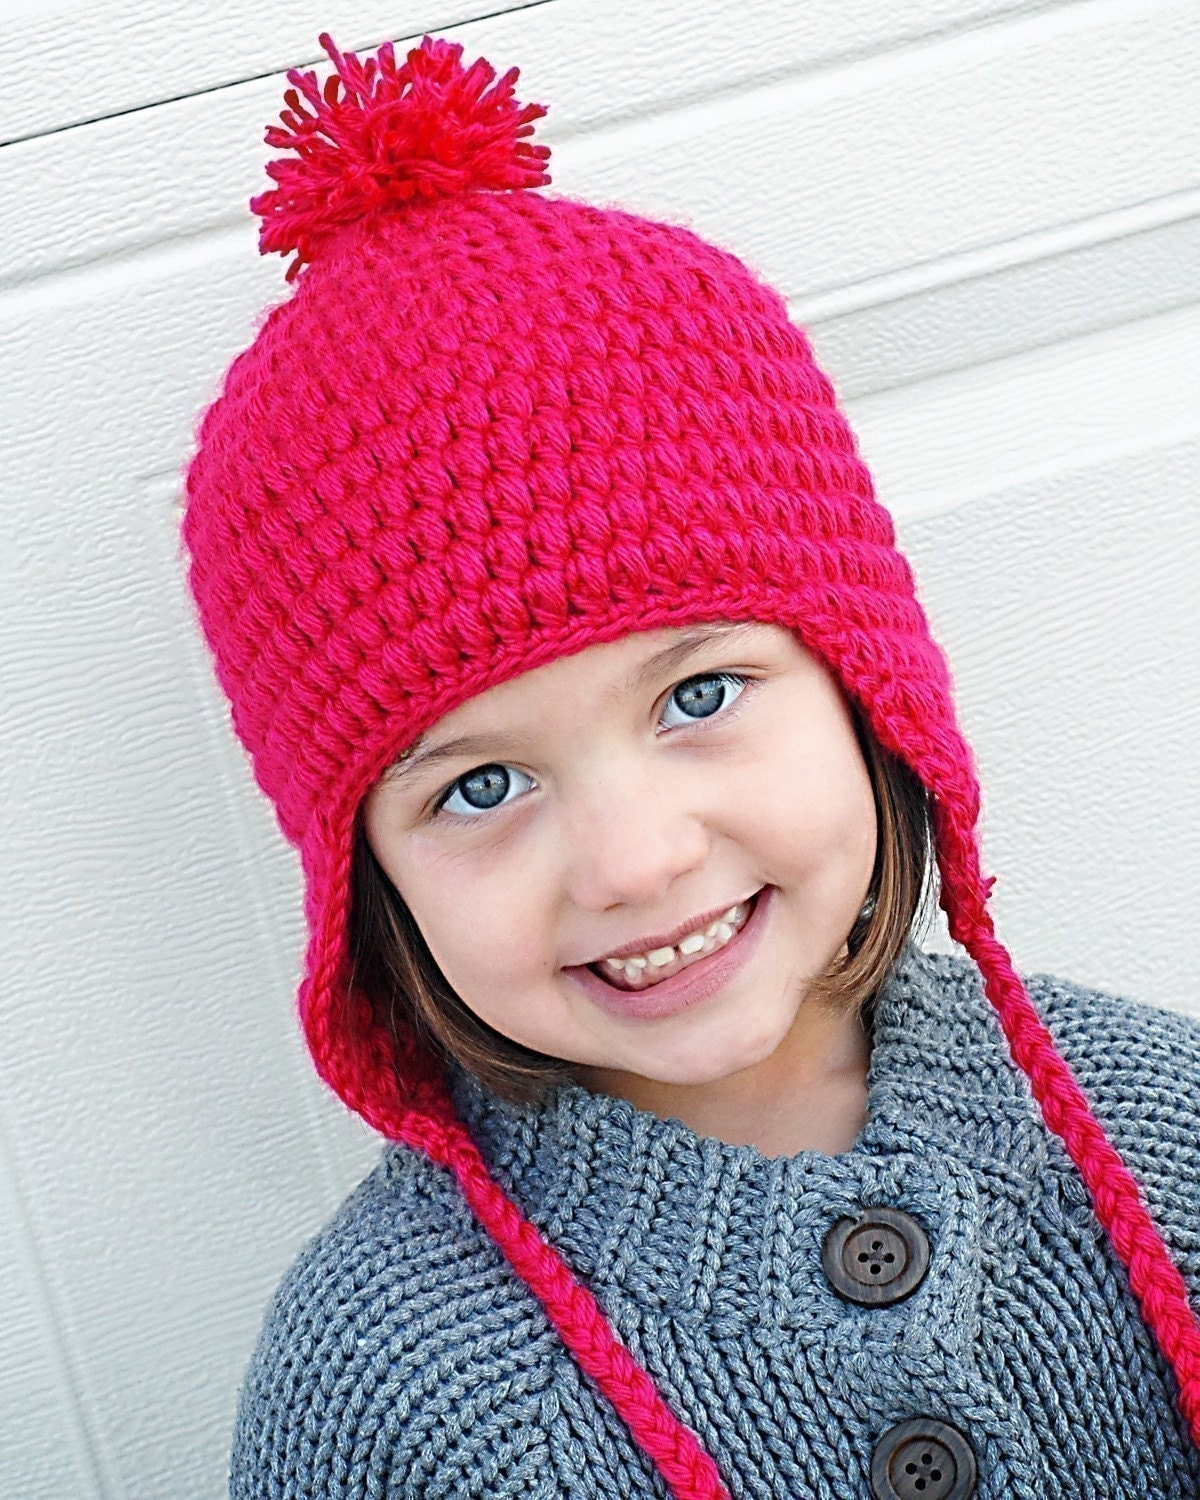 Free Crochet Pattern Toddler Hat Ear Flaps : Puffy Earflap Hat Crochet Pattern Instant by adrienneengar ...